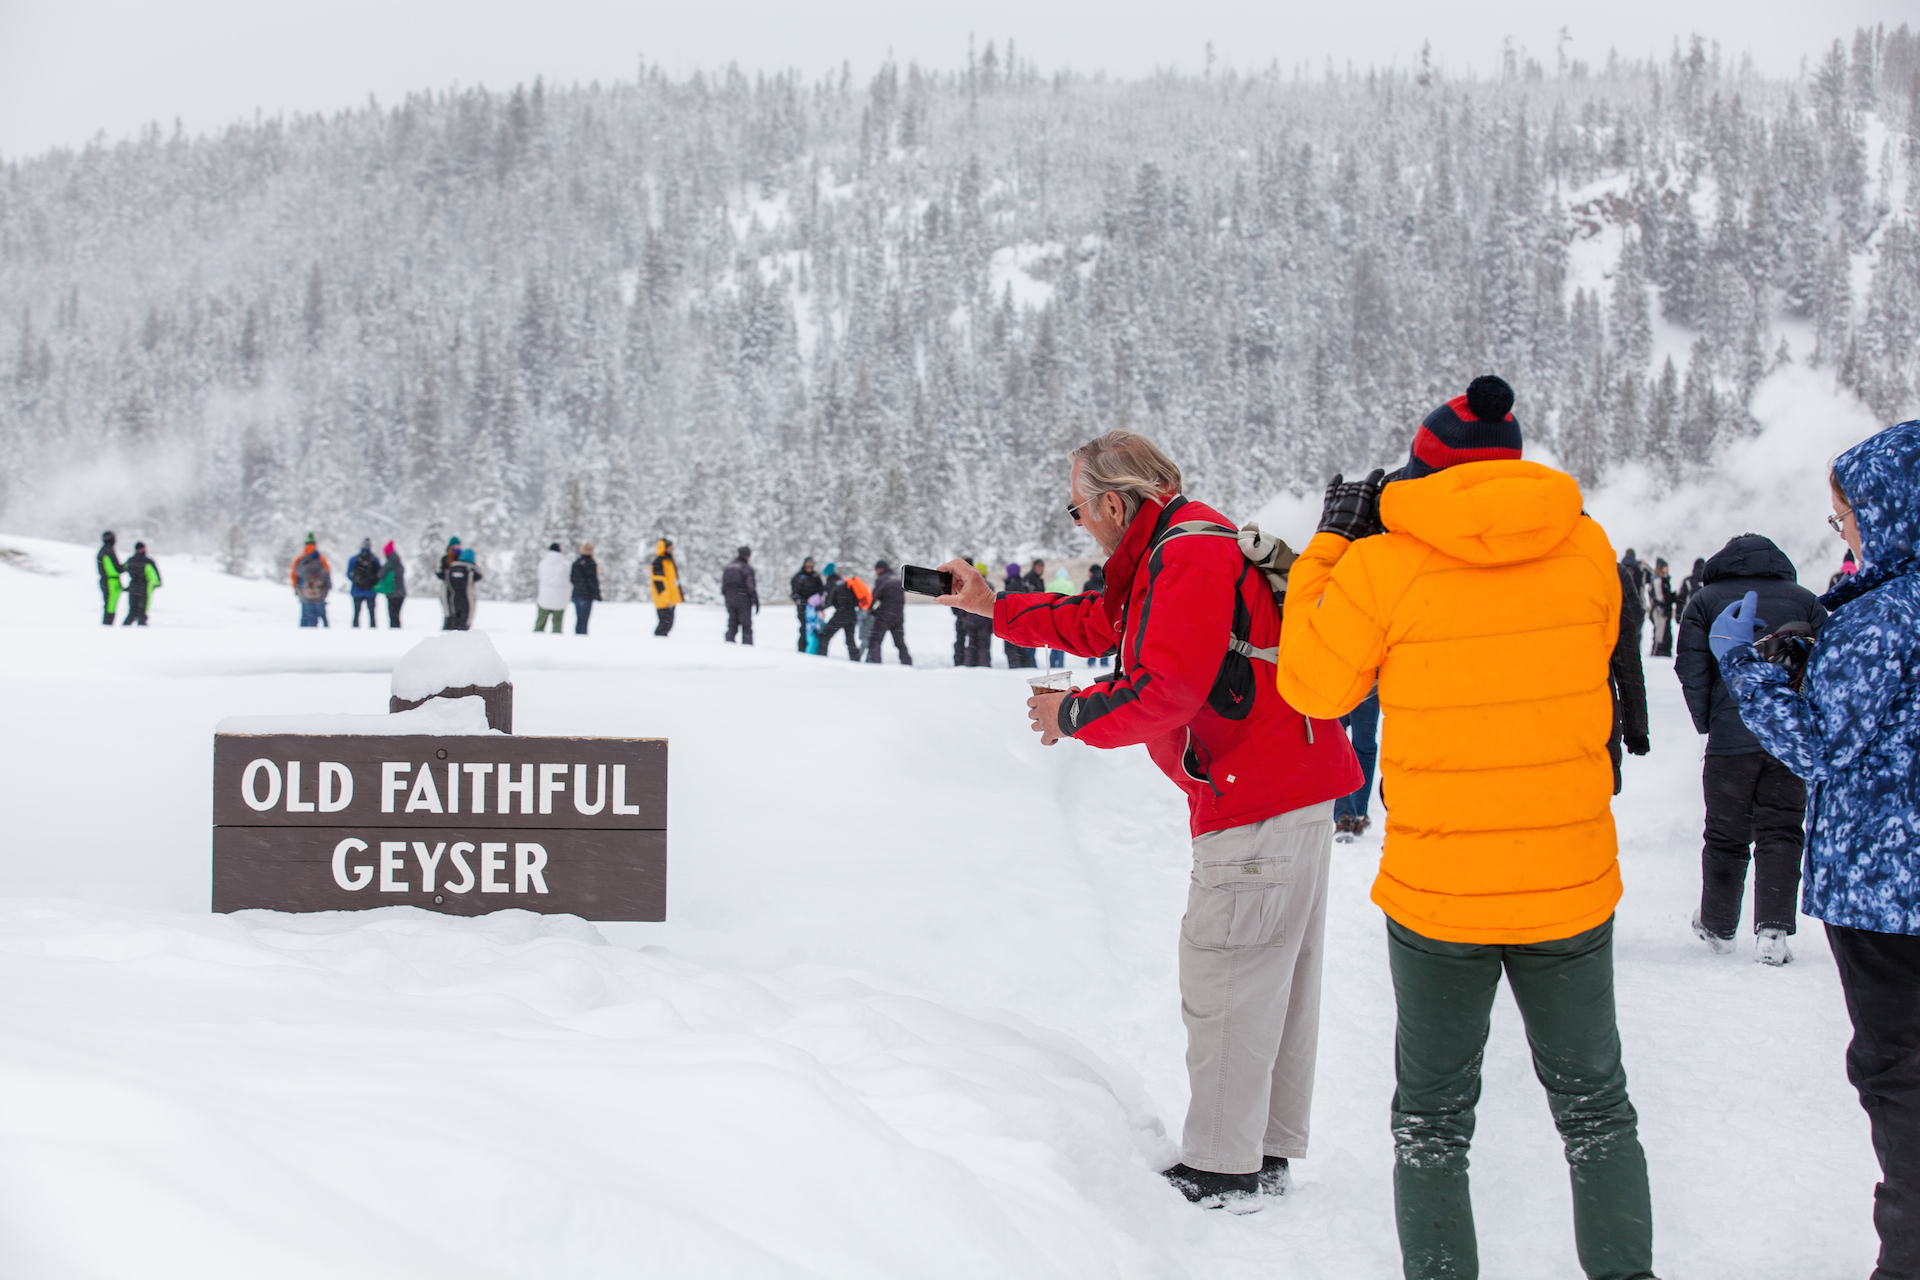 winter visit to Old Faithful in Yellowstone